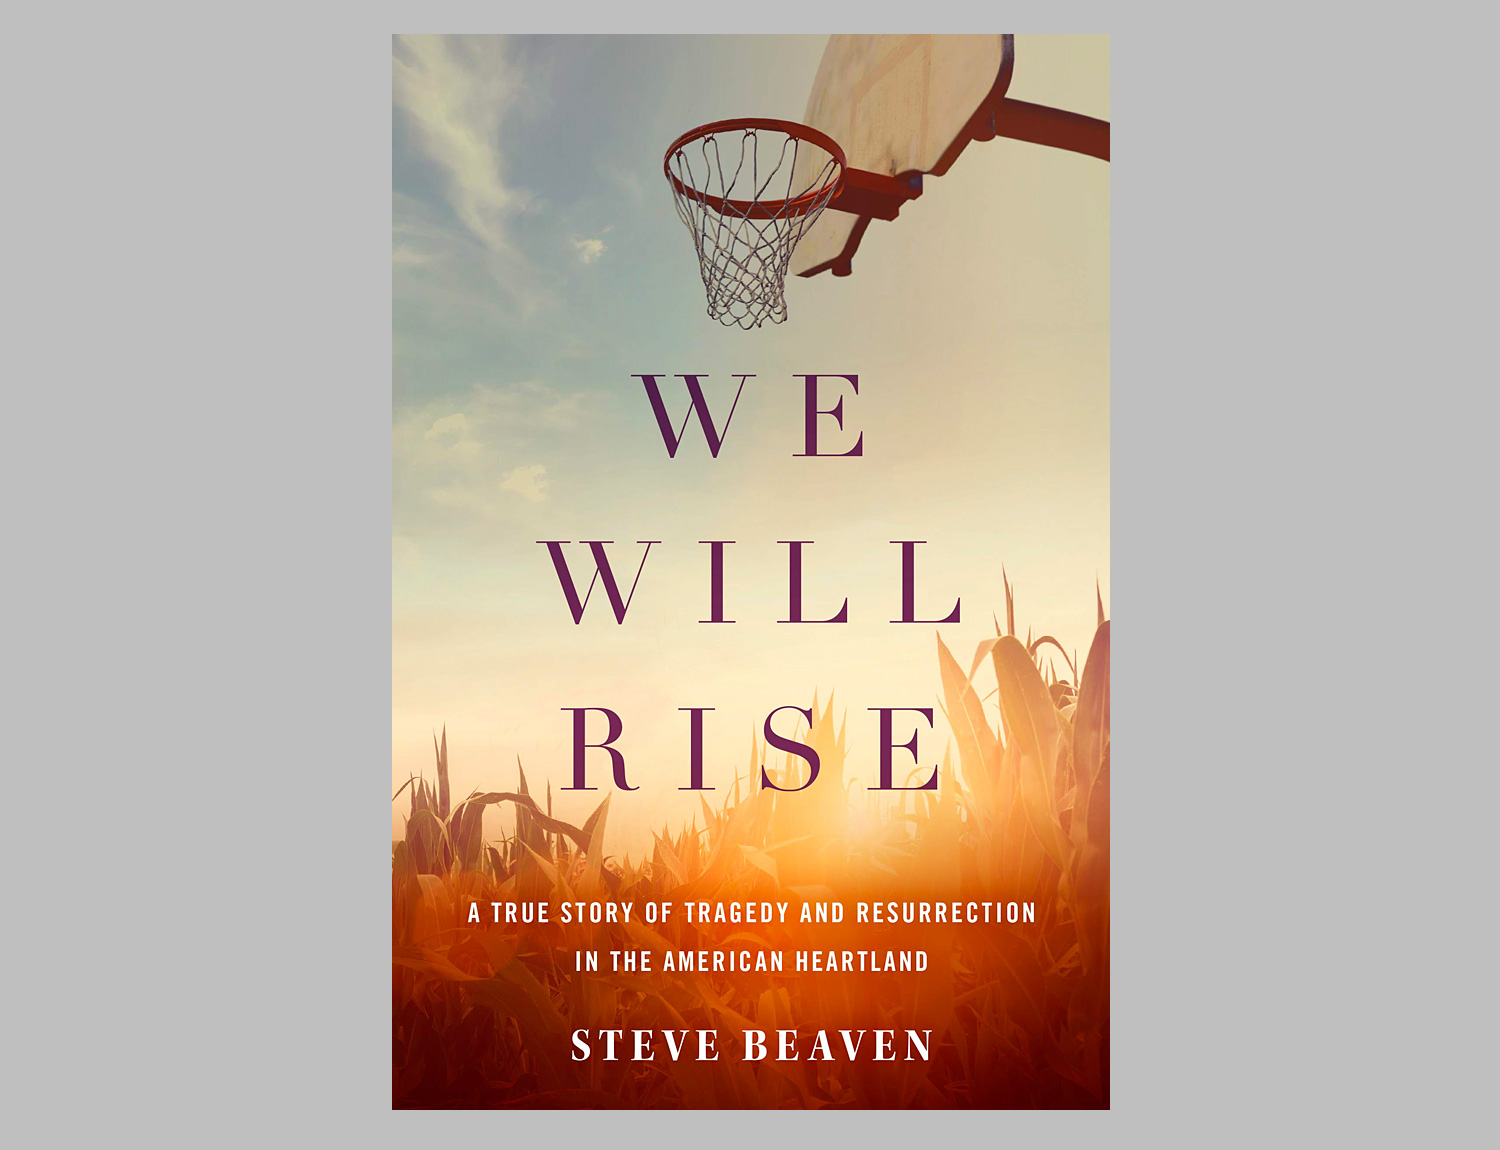 We Will Rise: A True Story of Tragedy and Resurrection in the American Heartland at werd.com